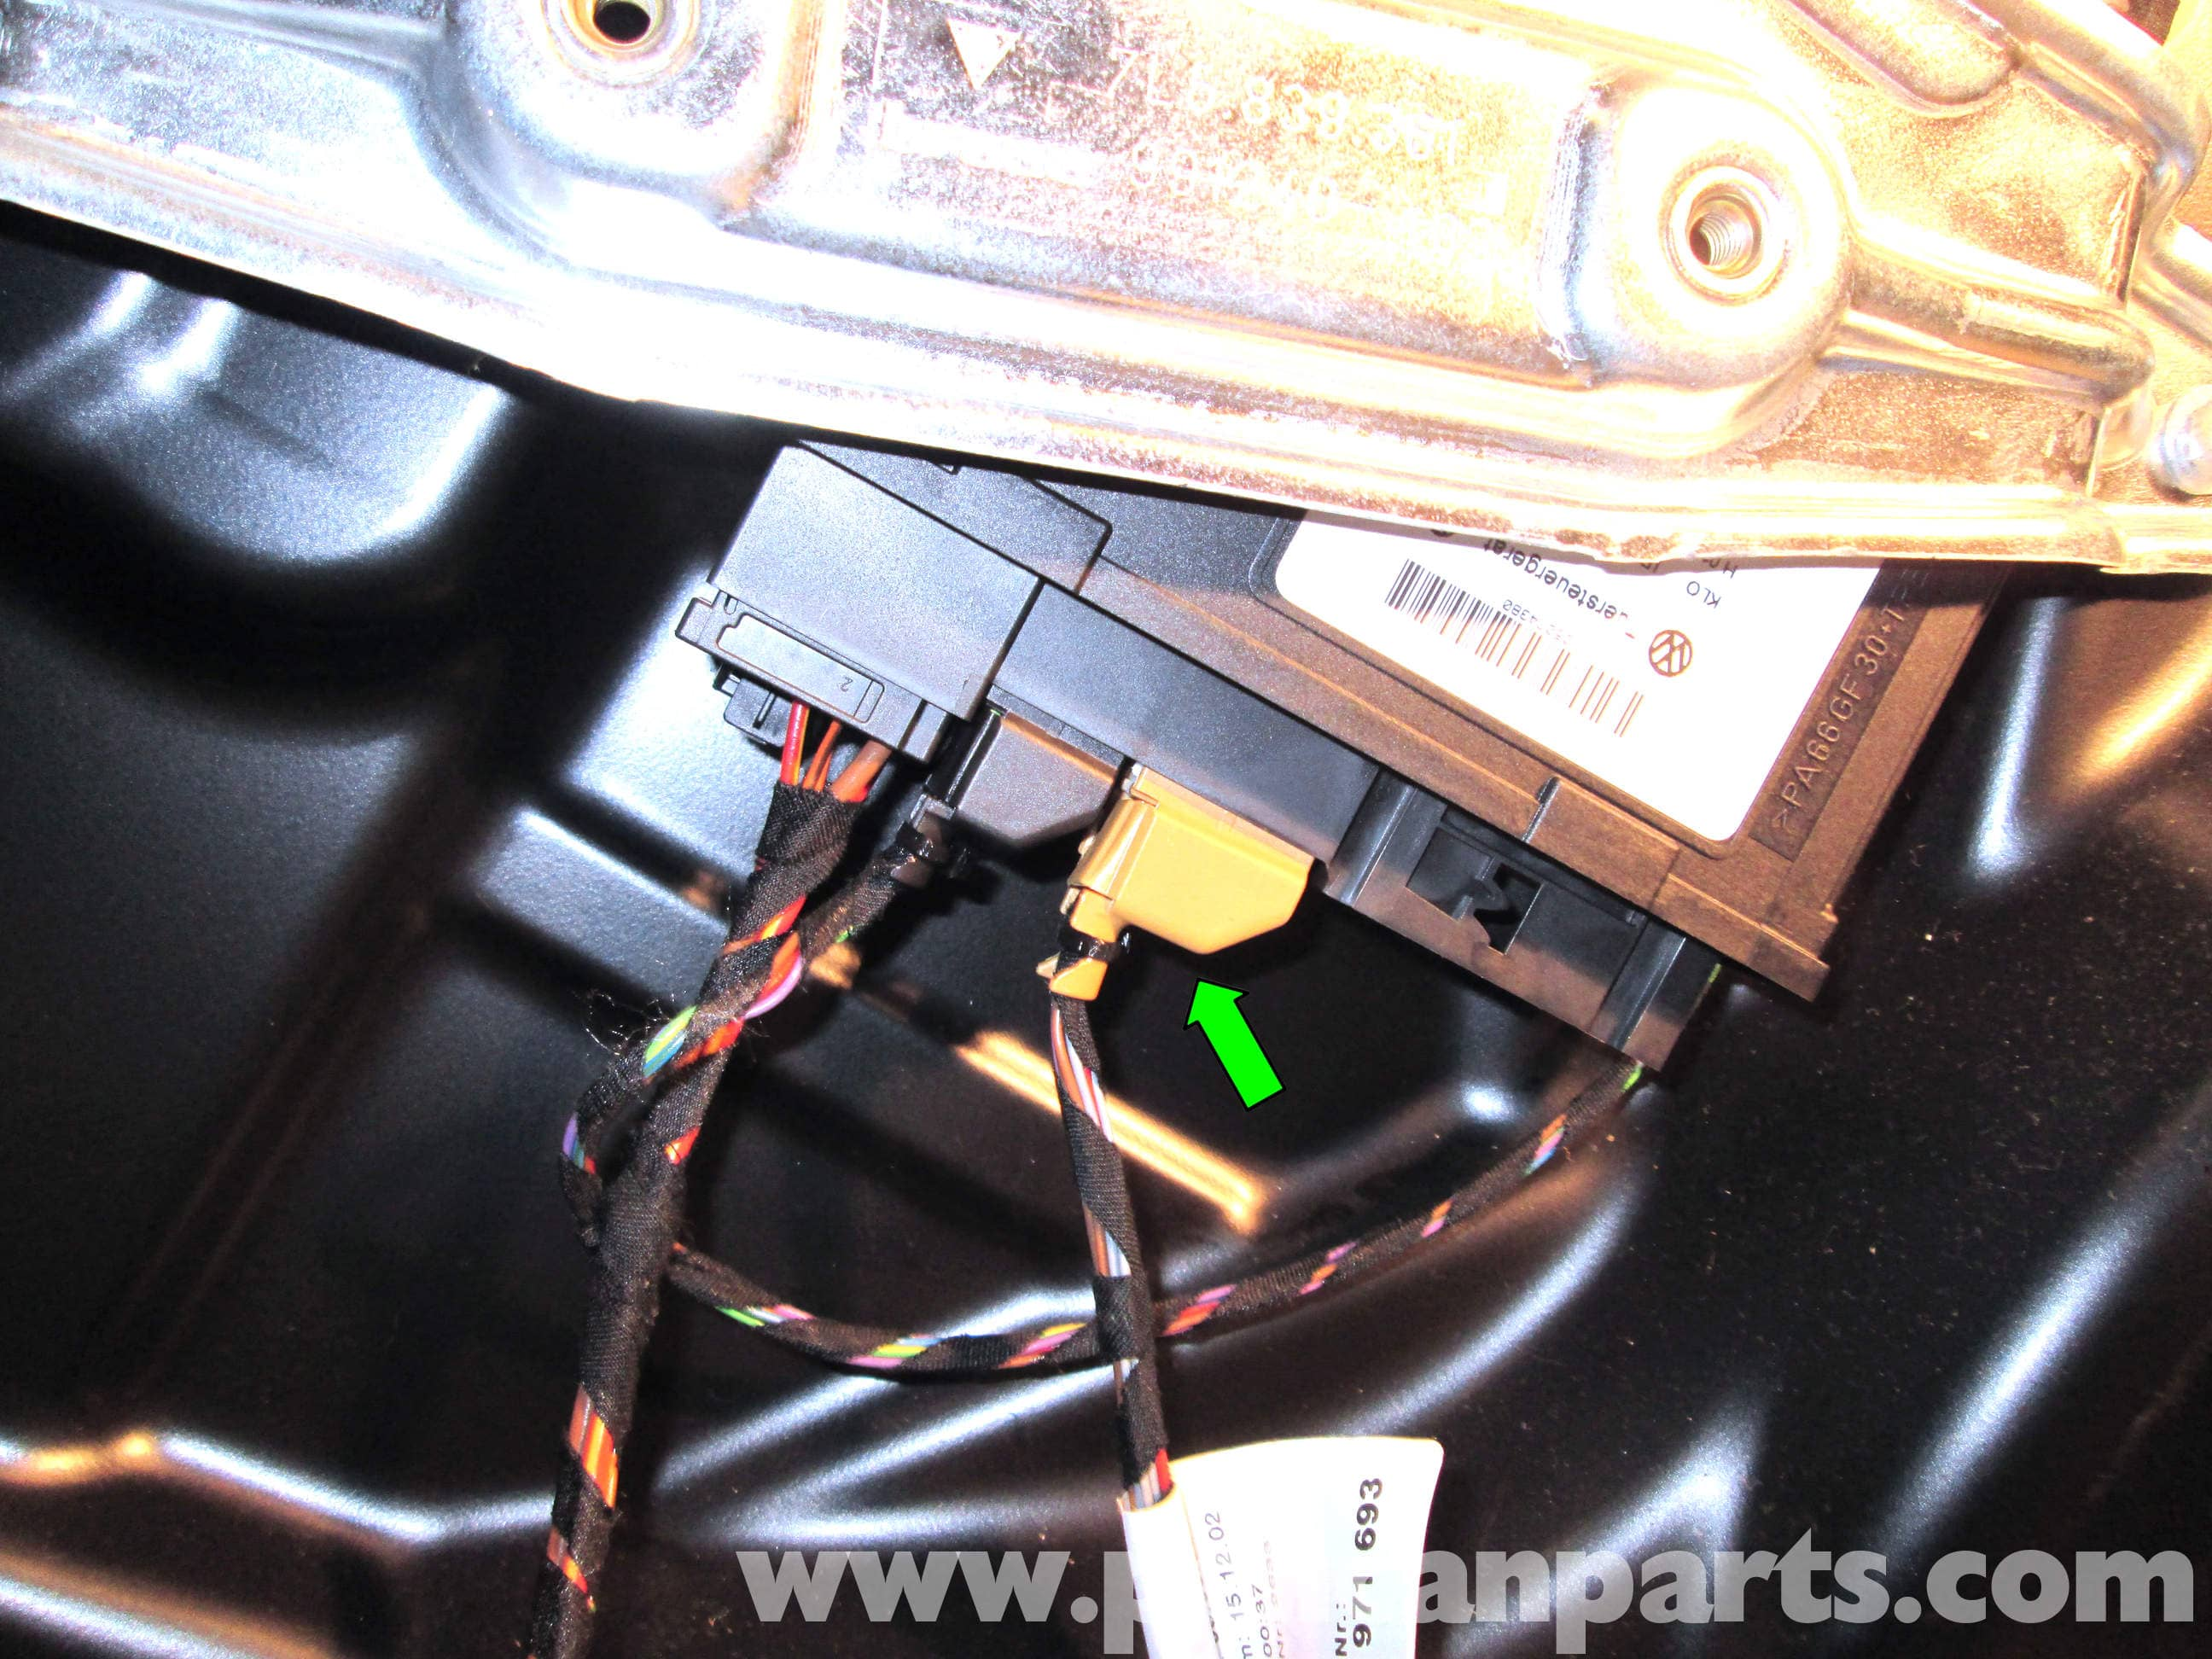 Porsche Cayenne Rear Door Panel Removal 2003 2008 Pelican Parts Wire Harness Repair Large Image Extra